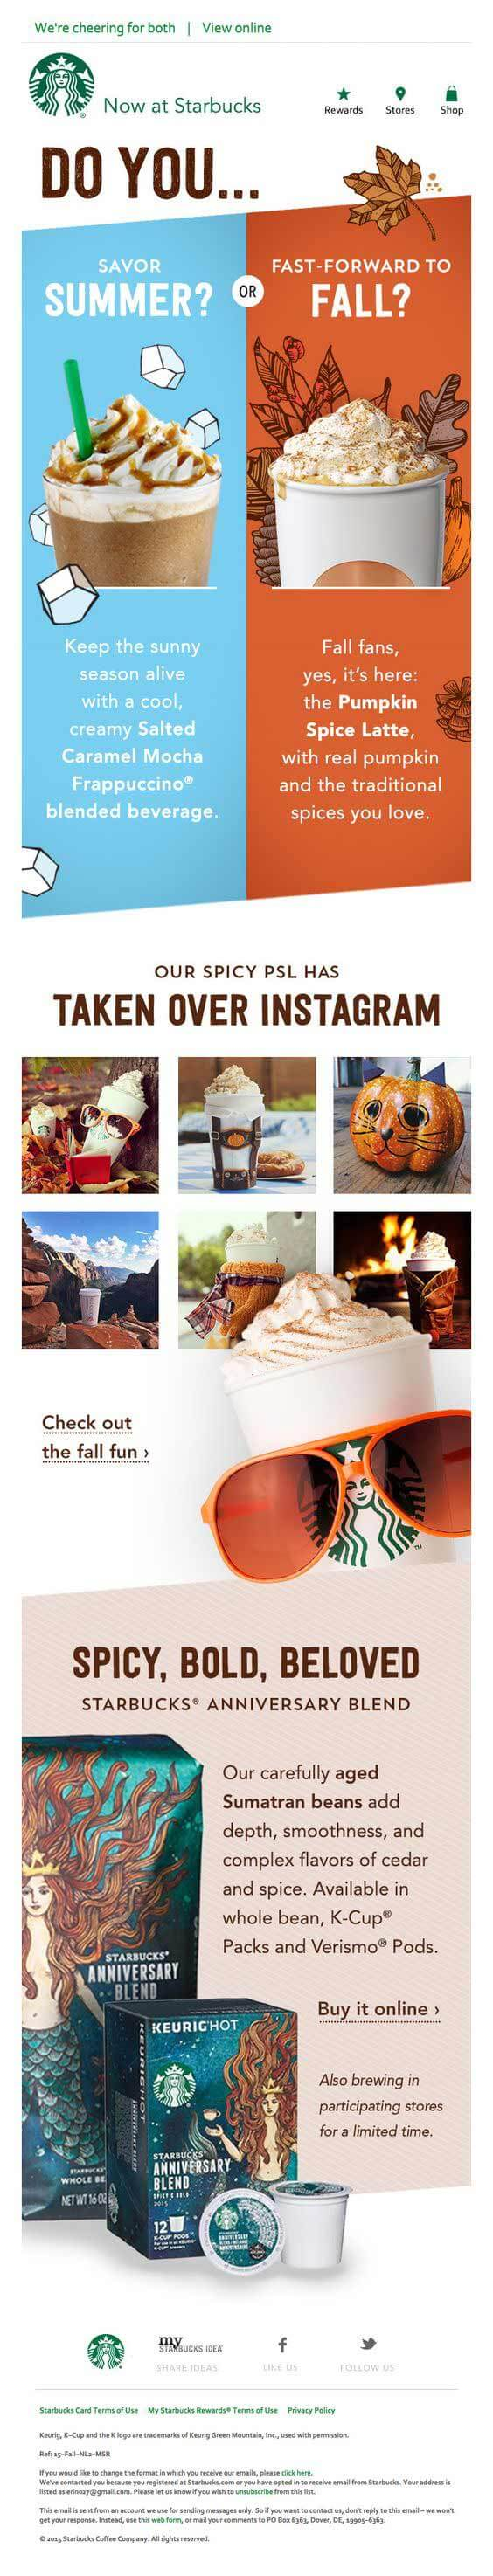 Seasonal Email Templates_Starbucks_summer-fall